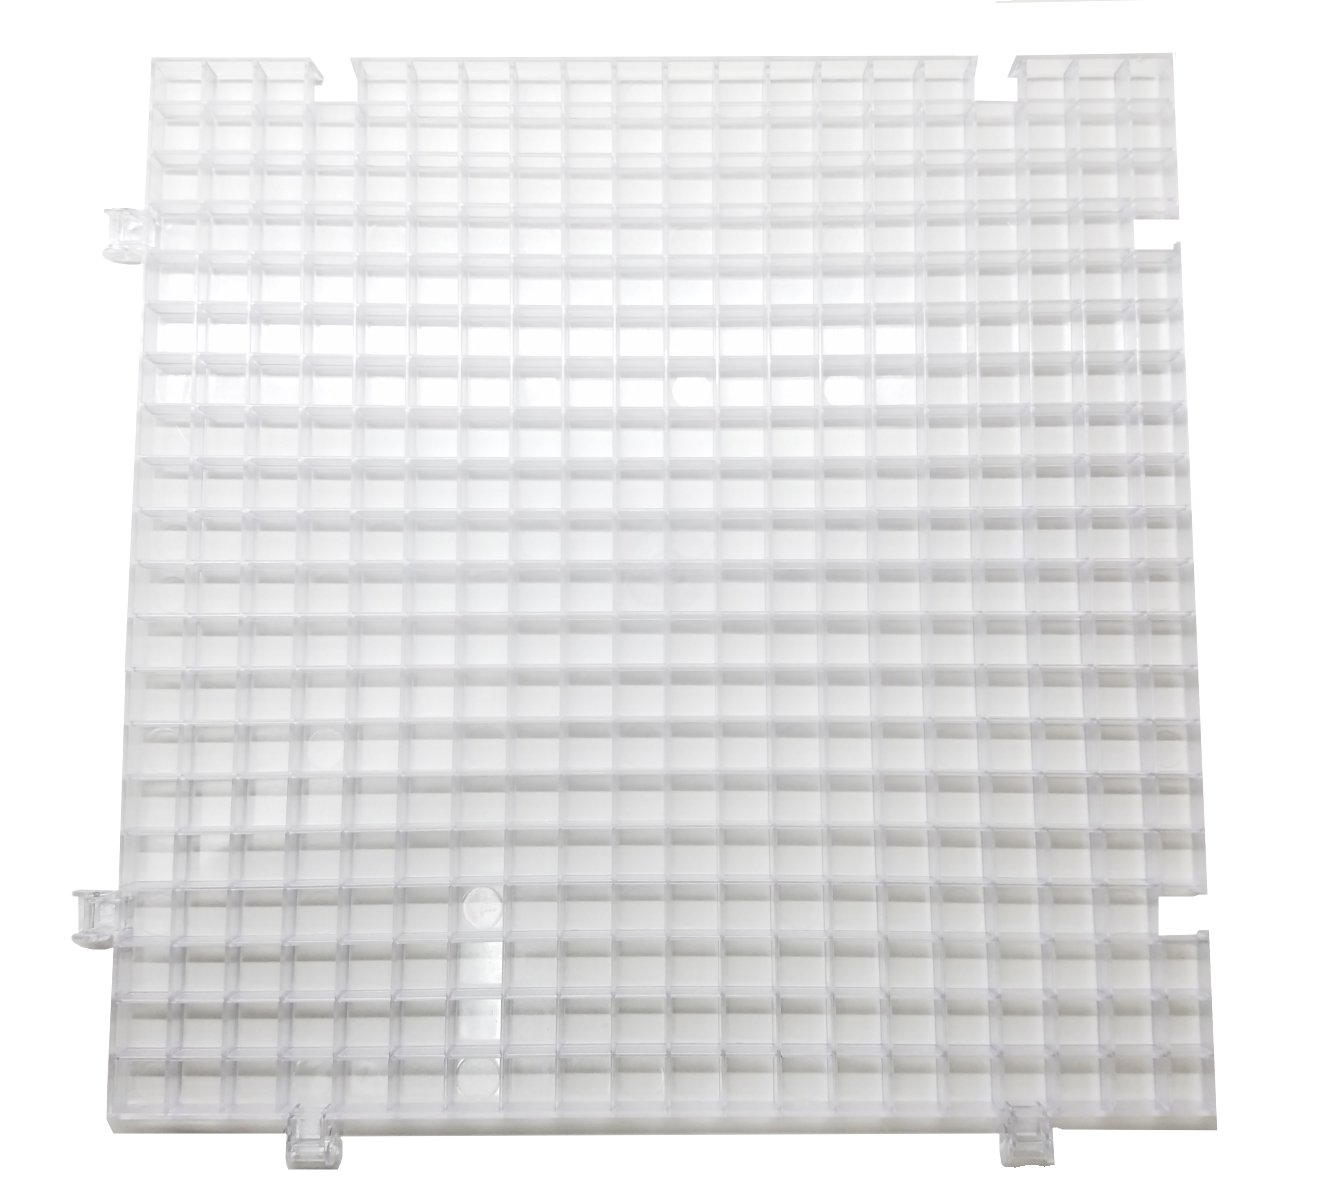 Creator's Waffle Grid 4-Pack Translucent/Clear Modular Surface for Glass Cutting, Drying Rack, Small Parts or Liquid Containment. Use at Home, Office, Shop - Works with Creator's Or Morton Products